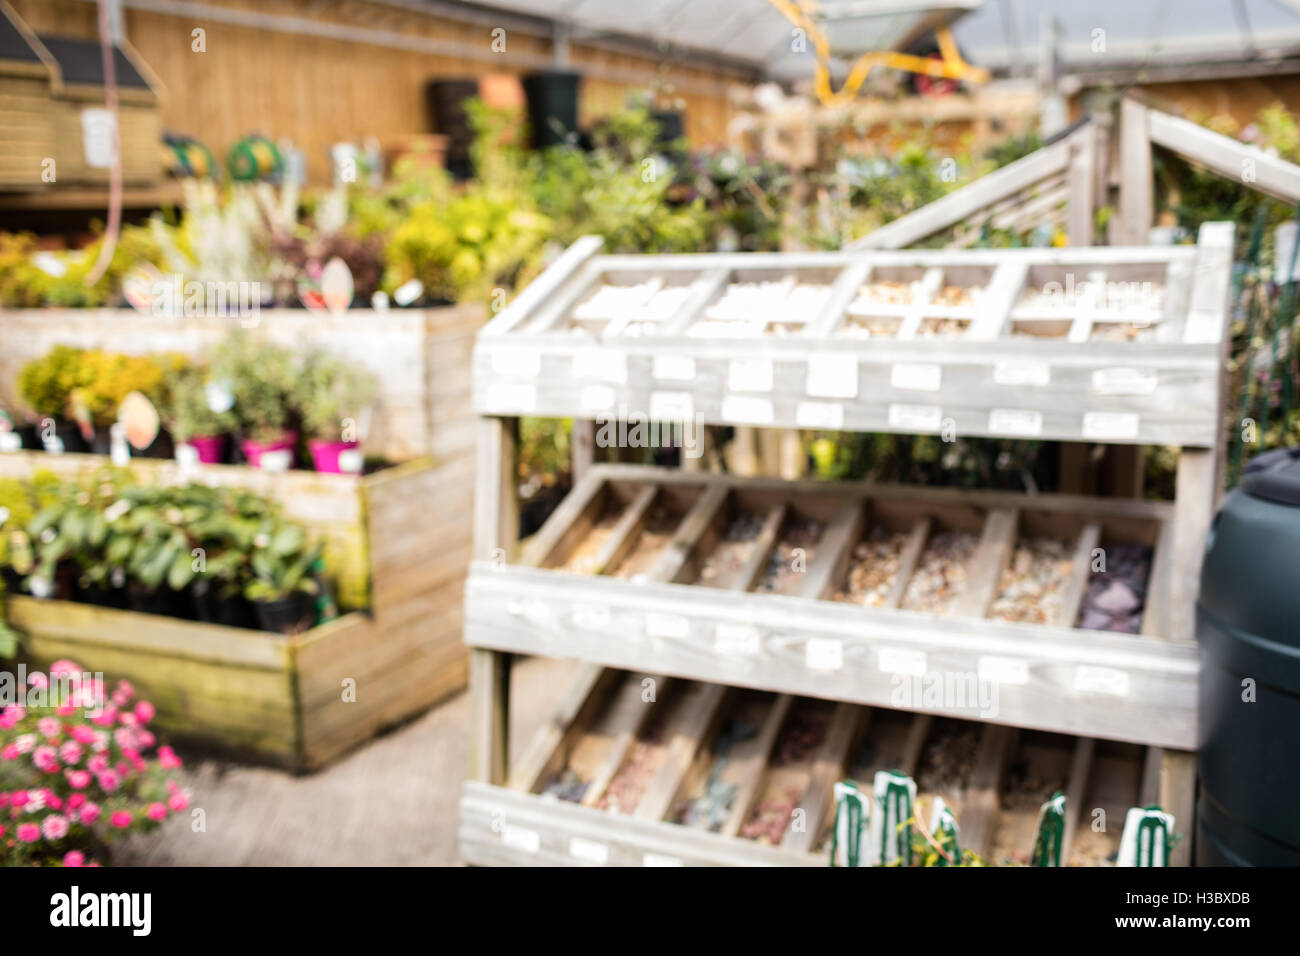 Potted plants and wooden shelf in garden centre - Stock Image